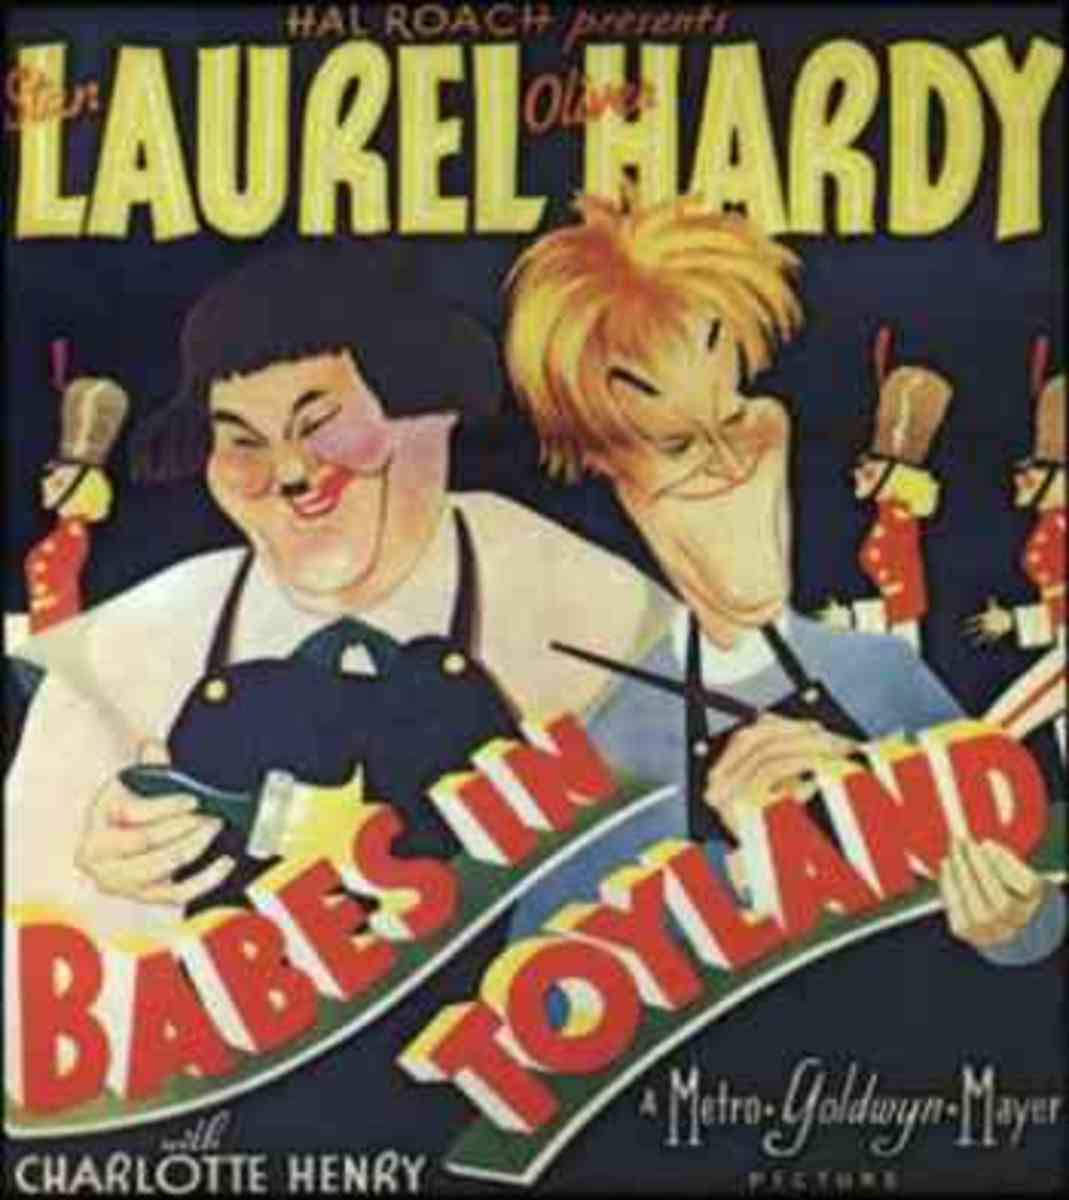 1934 Theatrical Poster